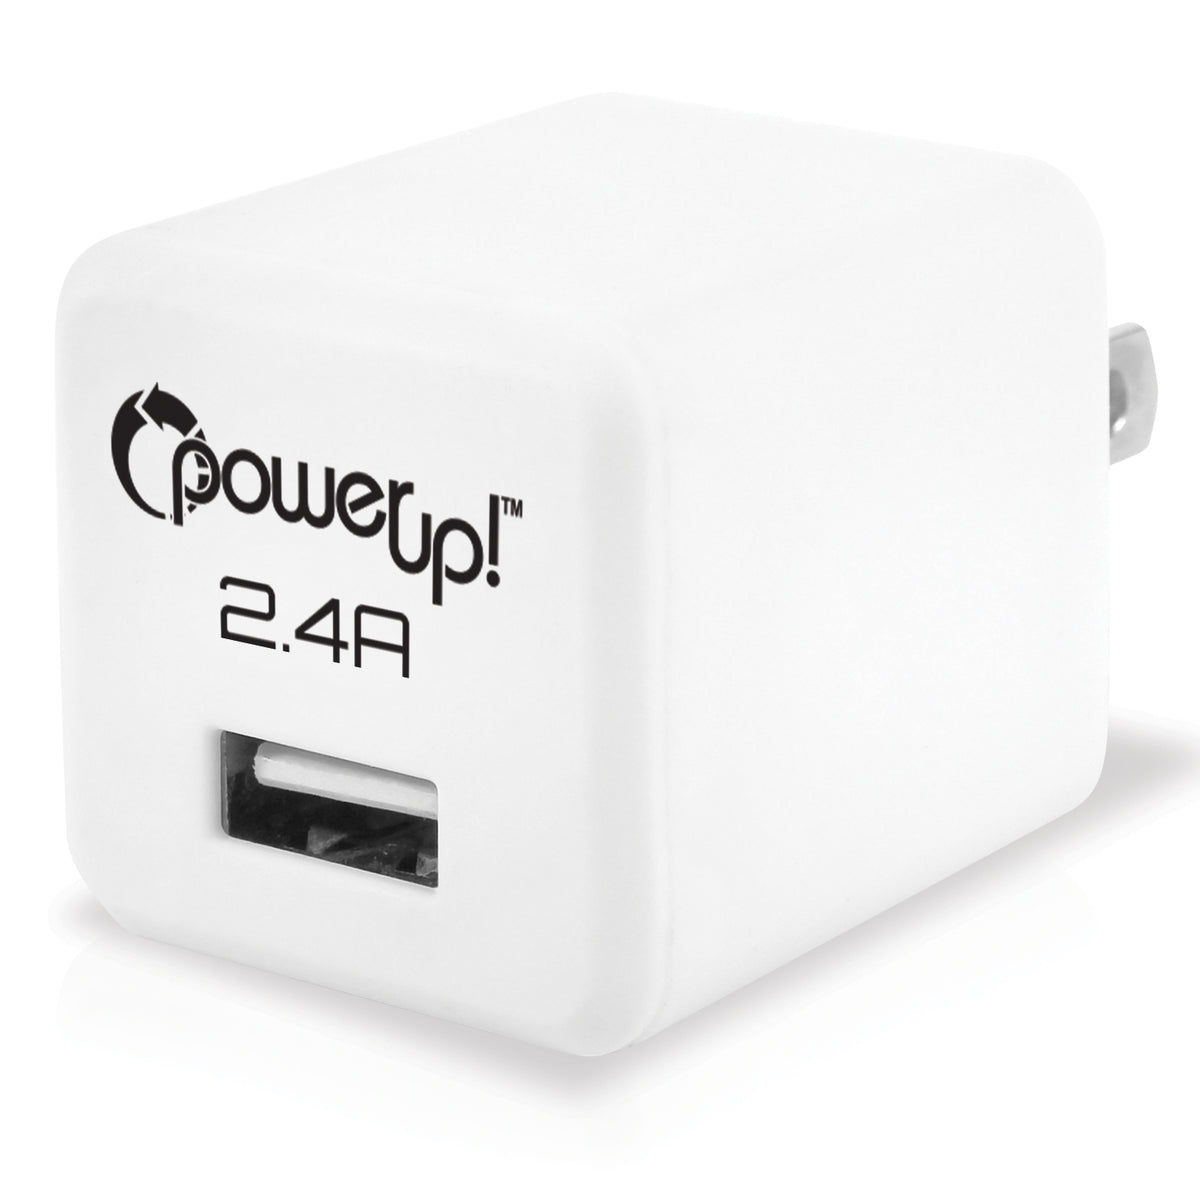 USB Wall Charger 2.4A